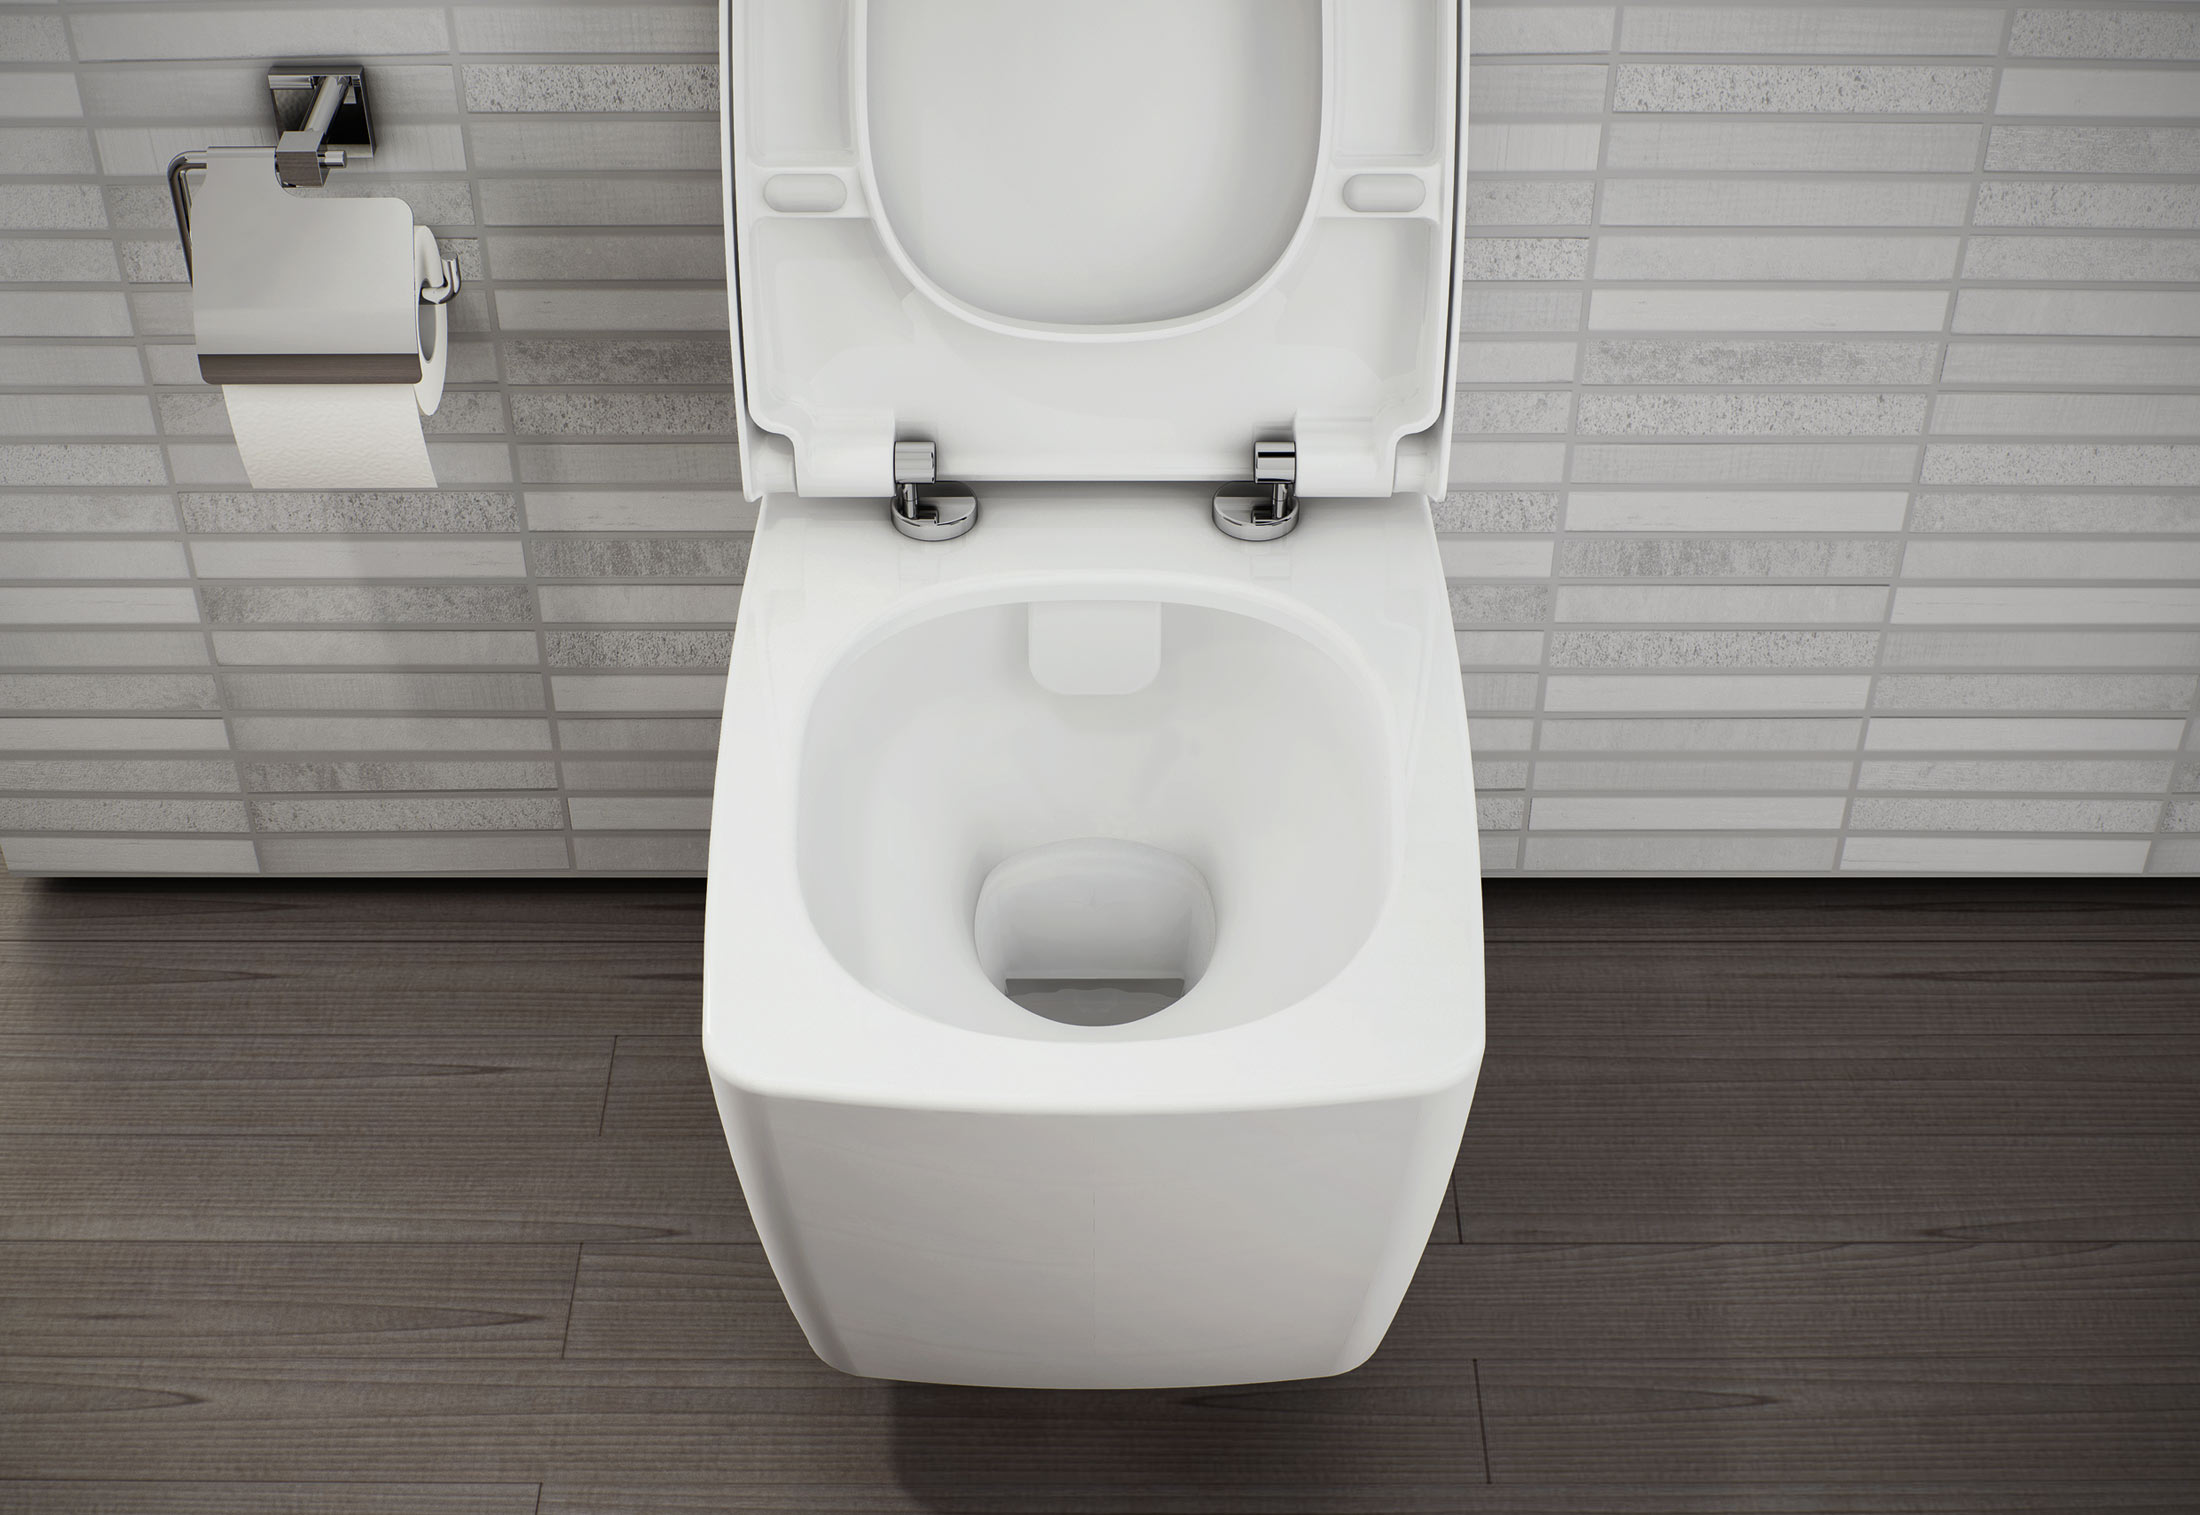 Metropole Wall Mounted Wc Vitraflush By Vitra Bathroom